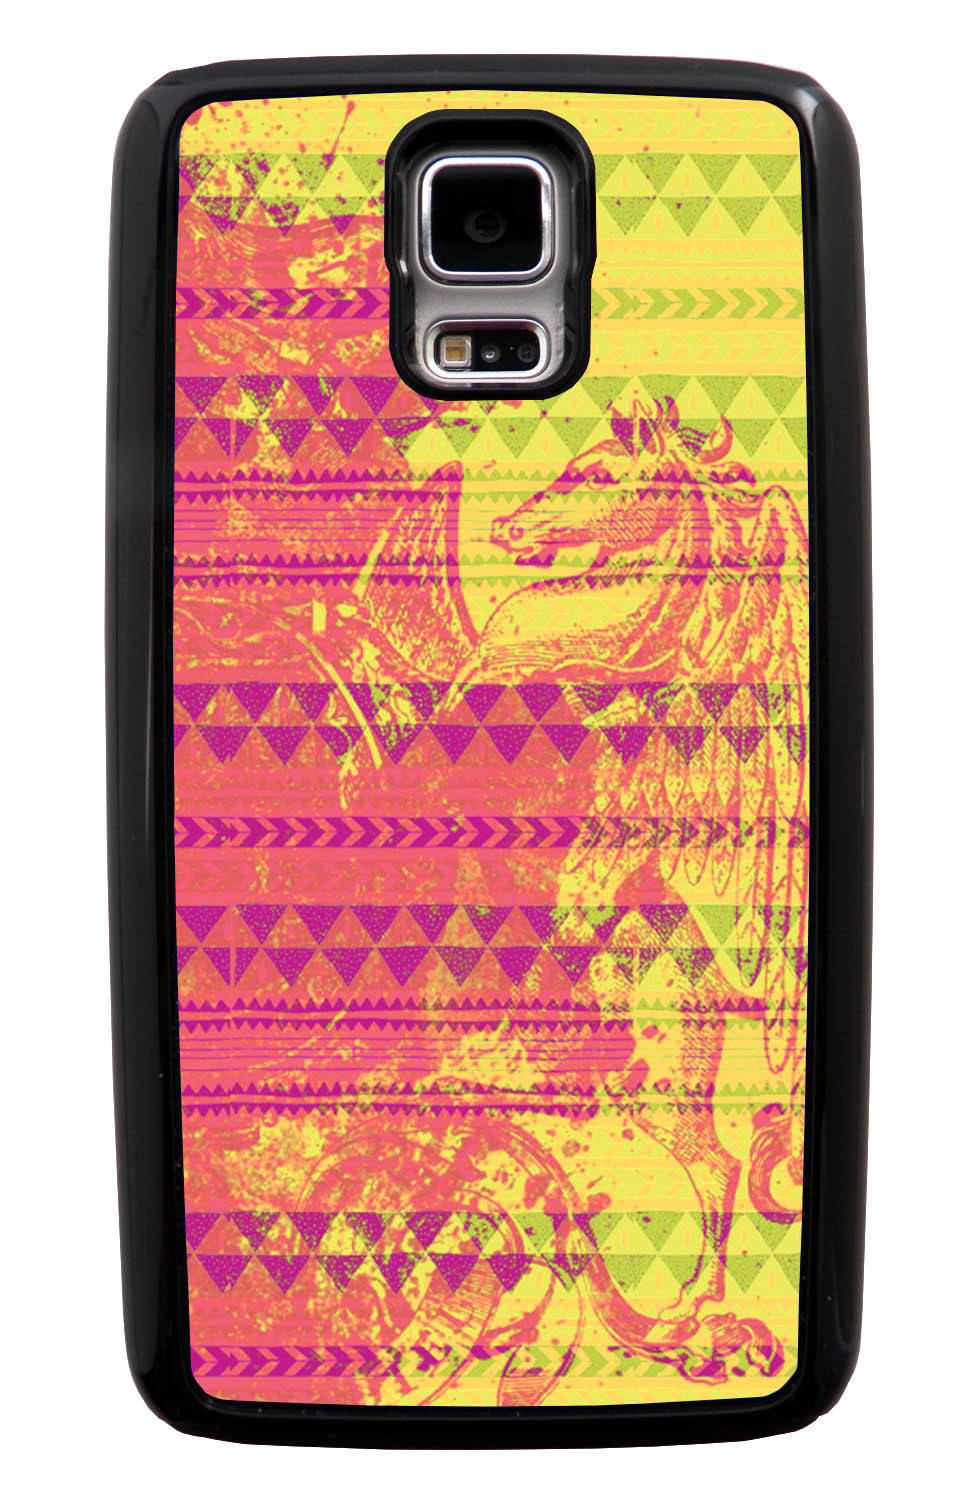 Samsung Galaxy S5 / SV Aztec Case - Pink Paint with Hot Pink, Yellow, and Green - Paint Splatter Overlay - Black Tough Hybrid Case